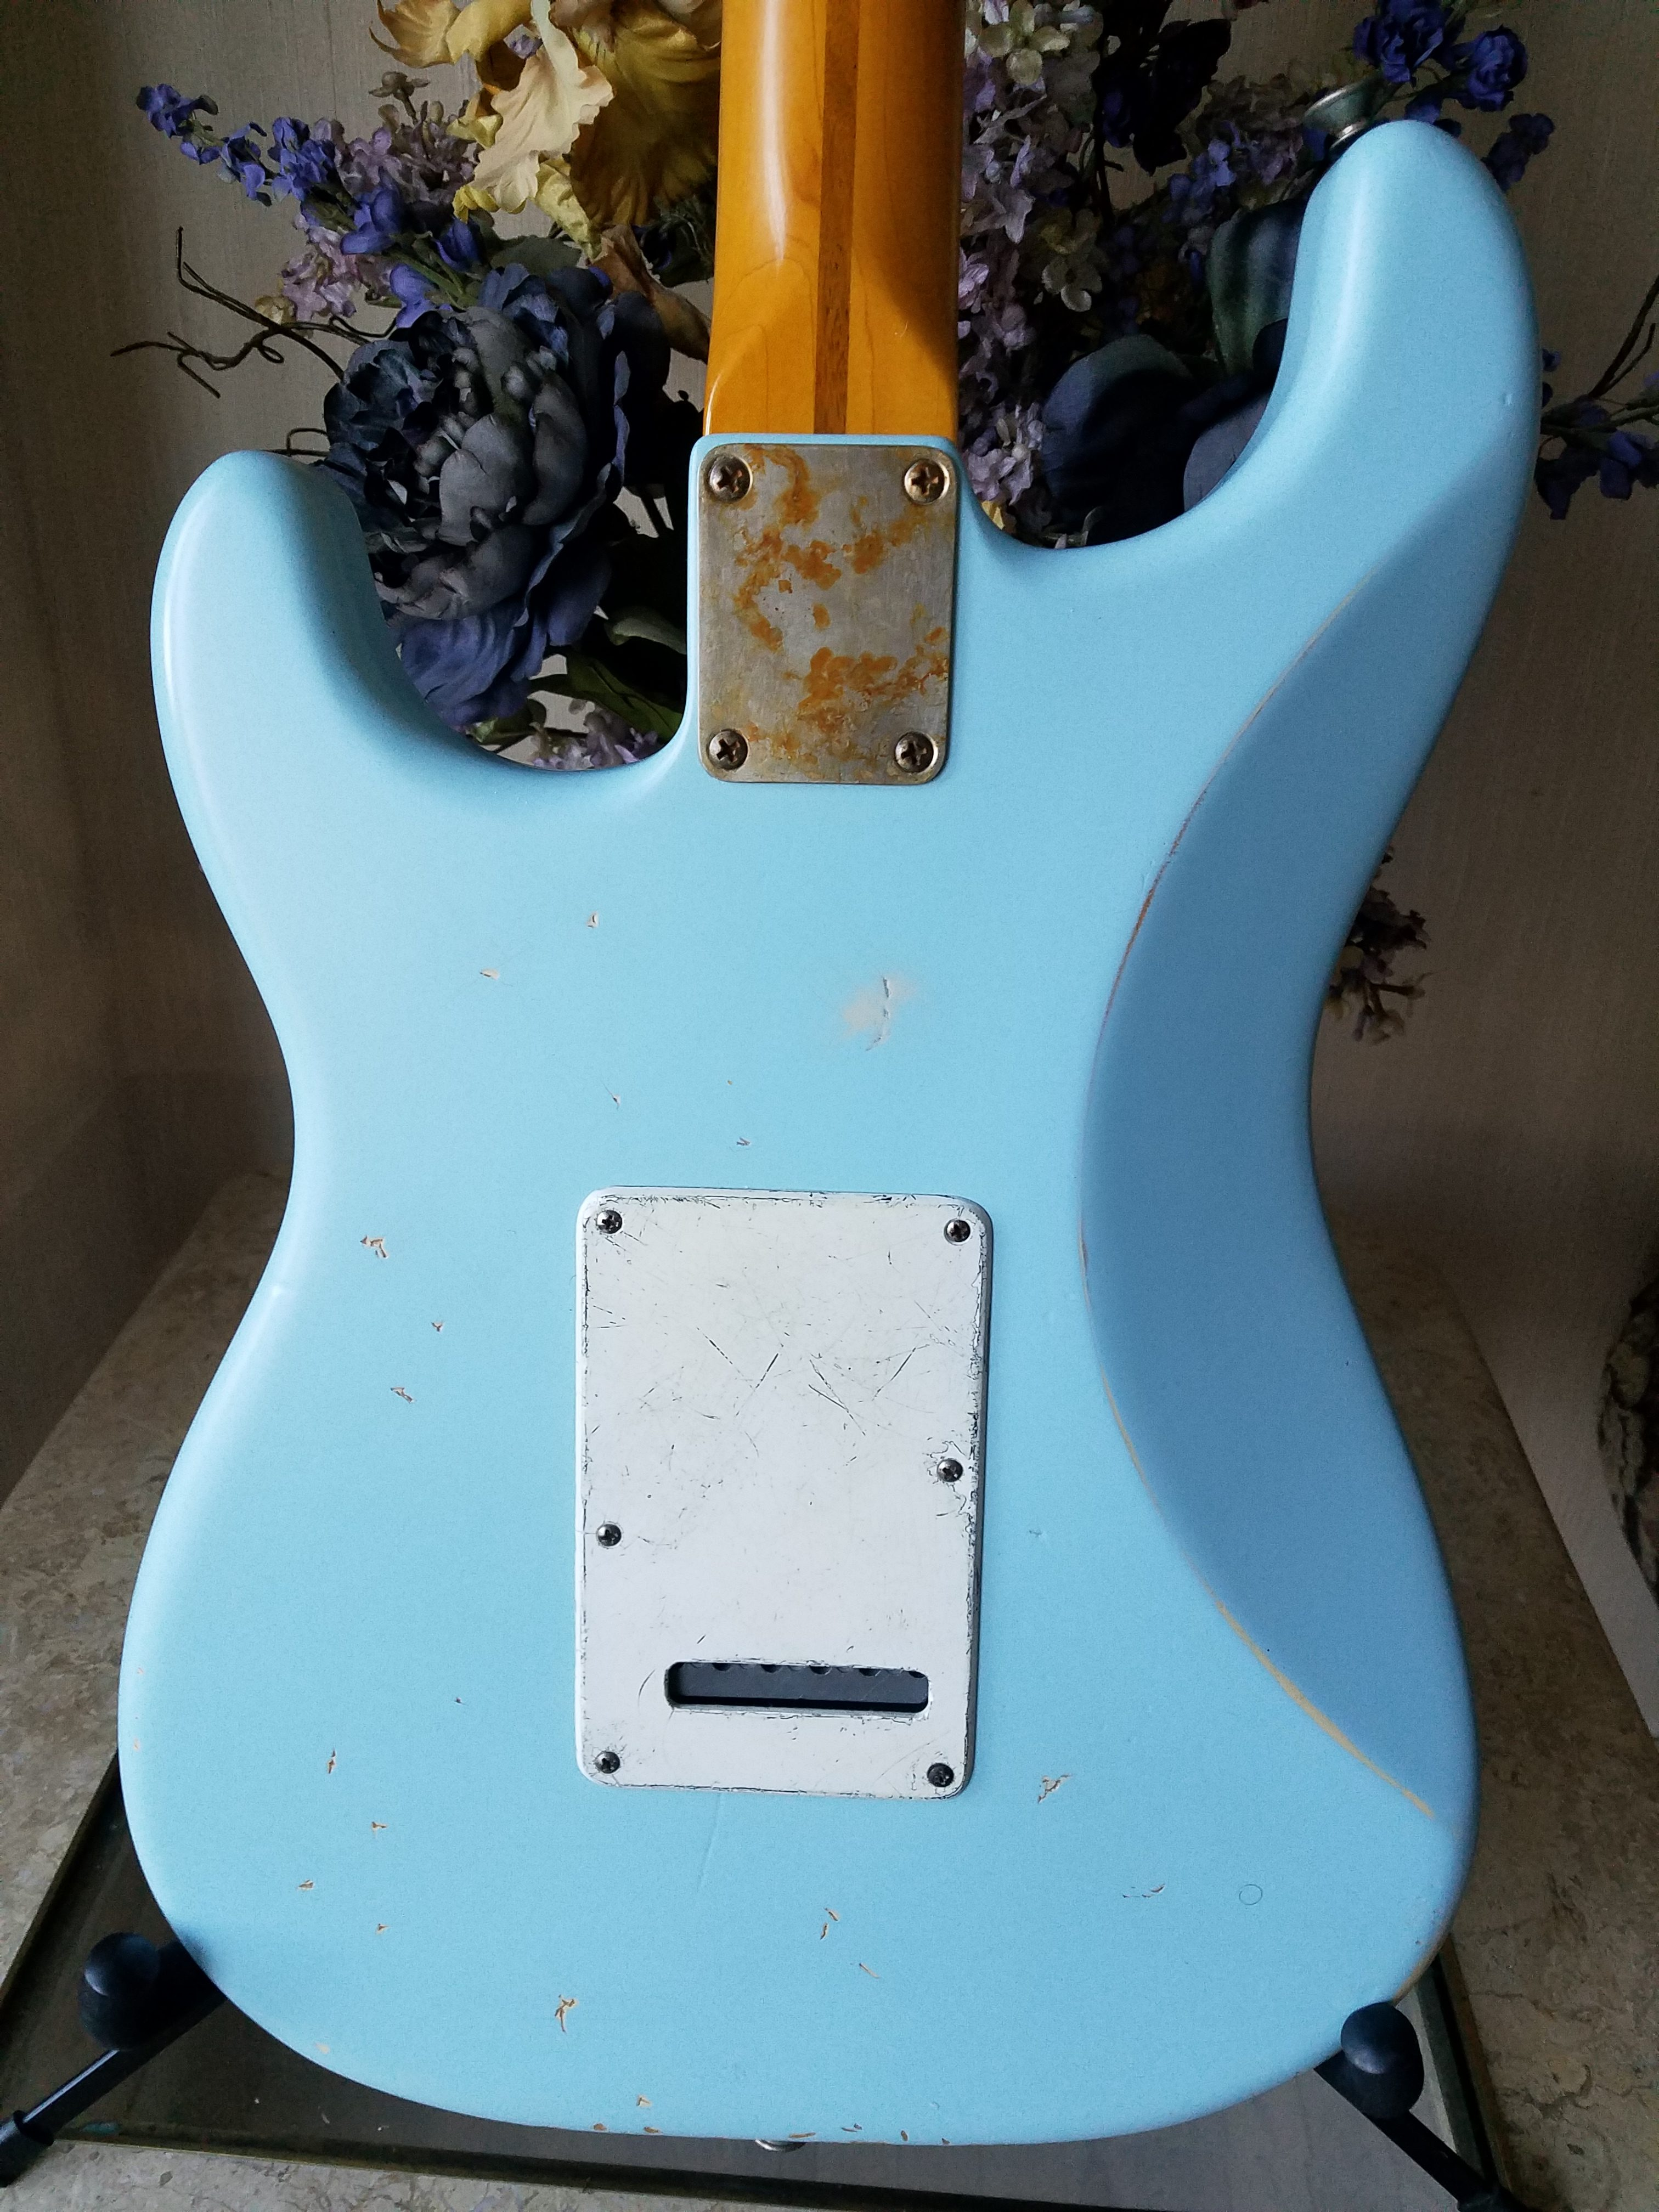 Fender Stratocaster Relic Daphne Blue Maple Neck  Back Cover Guitarwacky.com